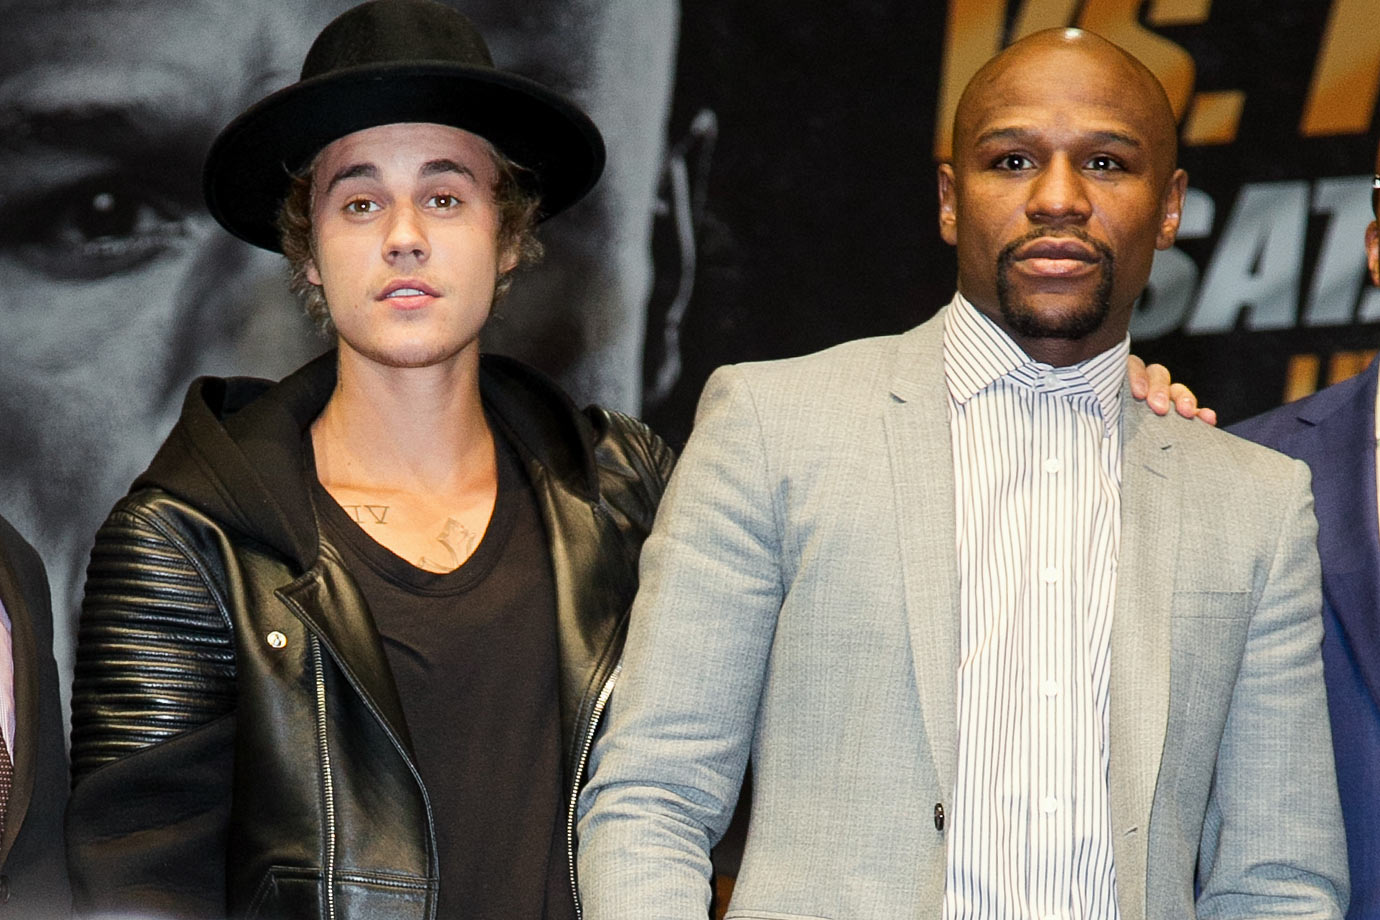 Justin Bieber poses with Floyd Mayweather Jr. during the Floyd Mayweather vs. Manny Pacquiao Press Conference on March 11, 2015 at Nokia Theatre L.A. Live in Los Angeles.